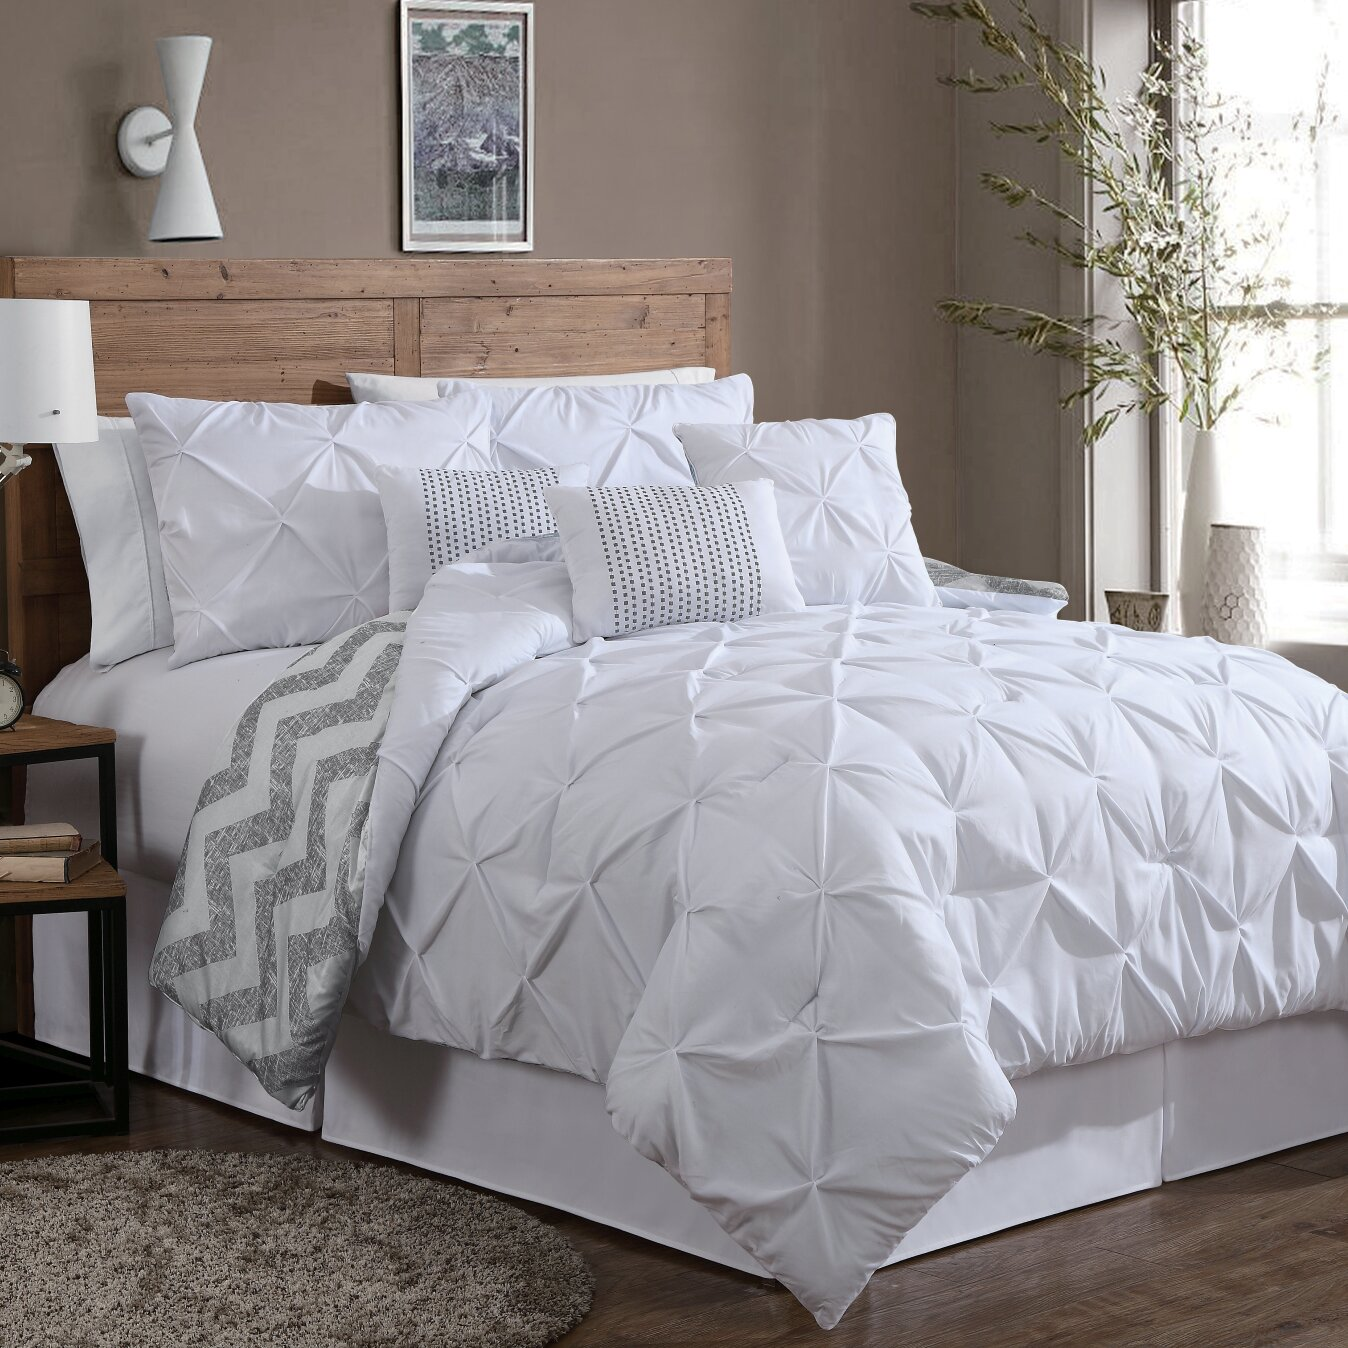 mcpherson 7 piece reversible comforter set u0026 reviews allmodern